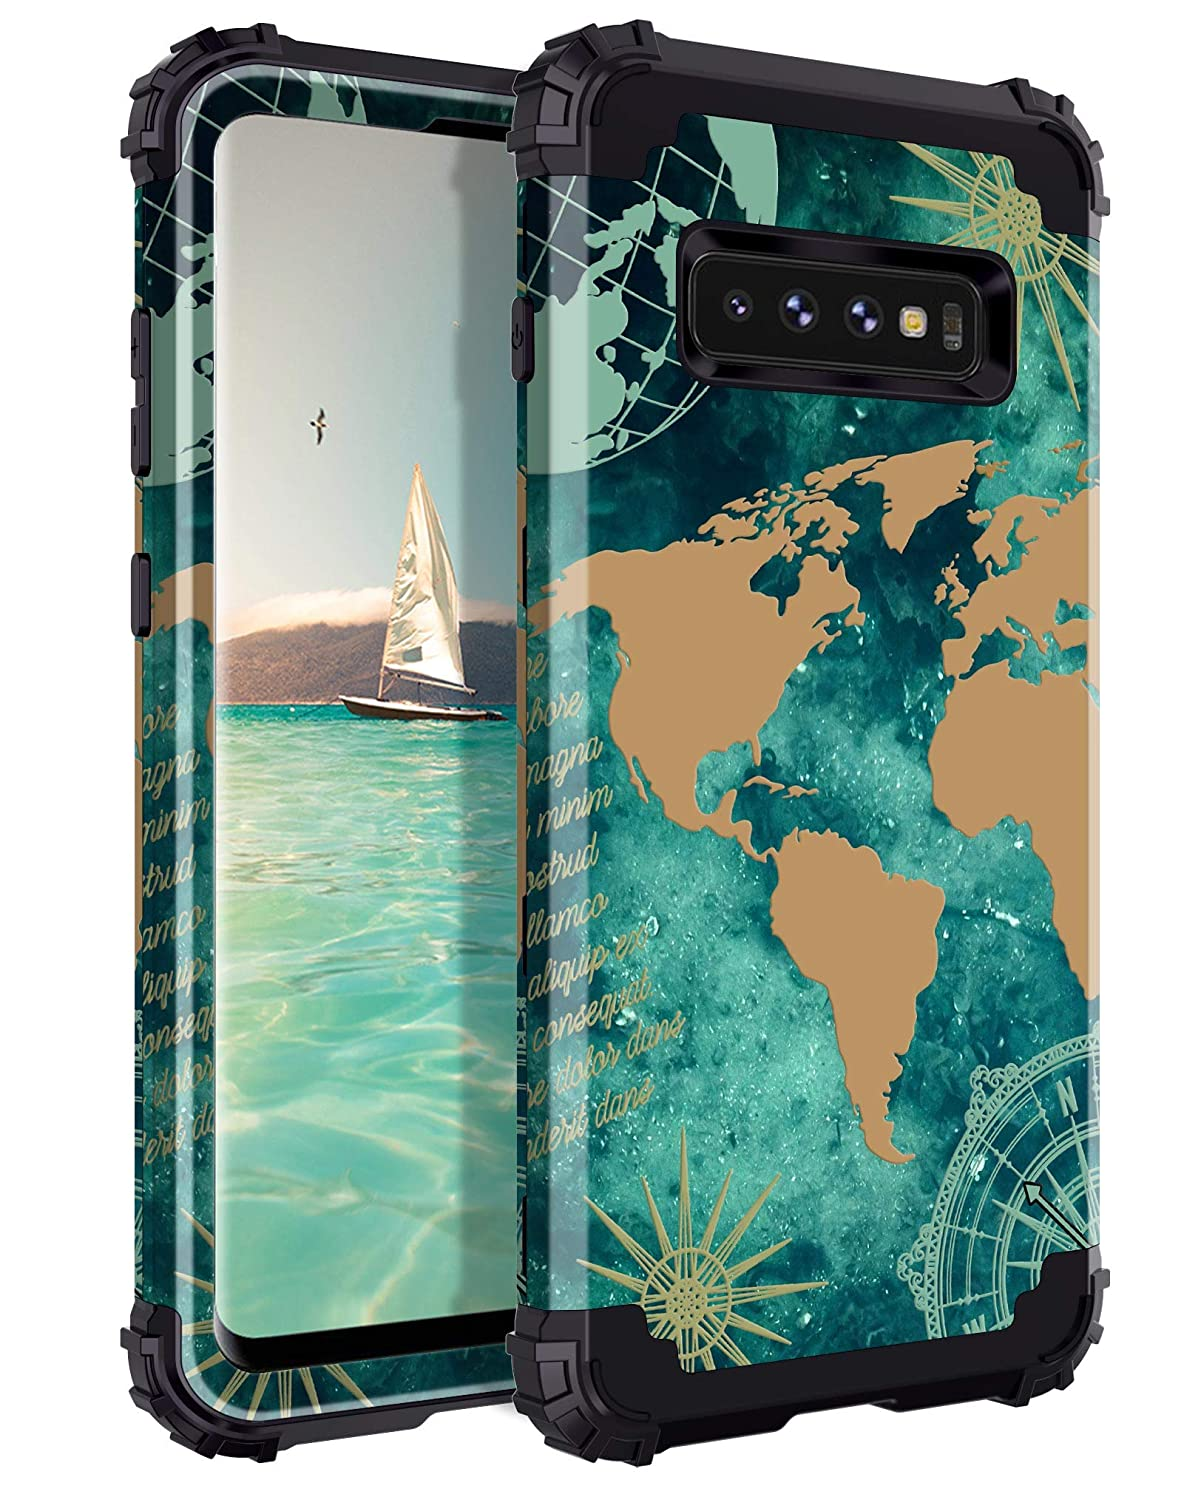 af8c18231f9 Lontect for Galaxy S10 Case Floral 3 in 1 Heavy Duty Hybrid Sturdy Armor  High Impact Shockproof Protective Cover Case for Samsung Galaxy S10, ...